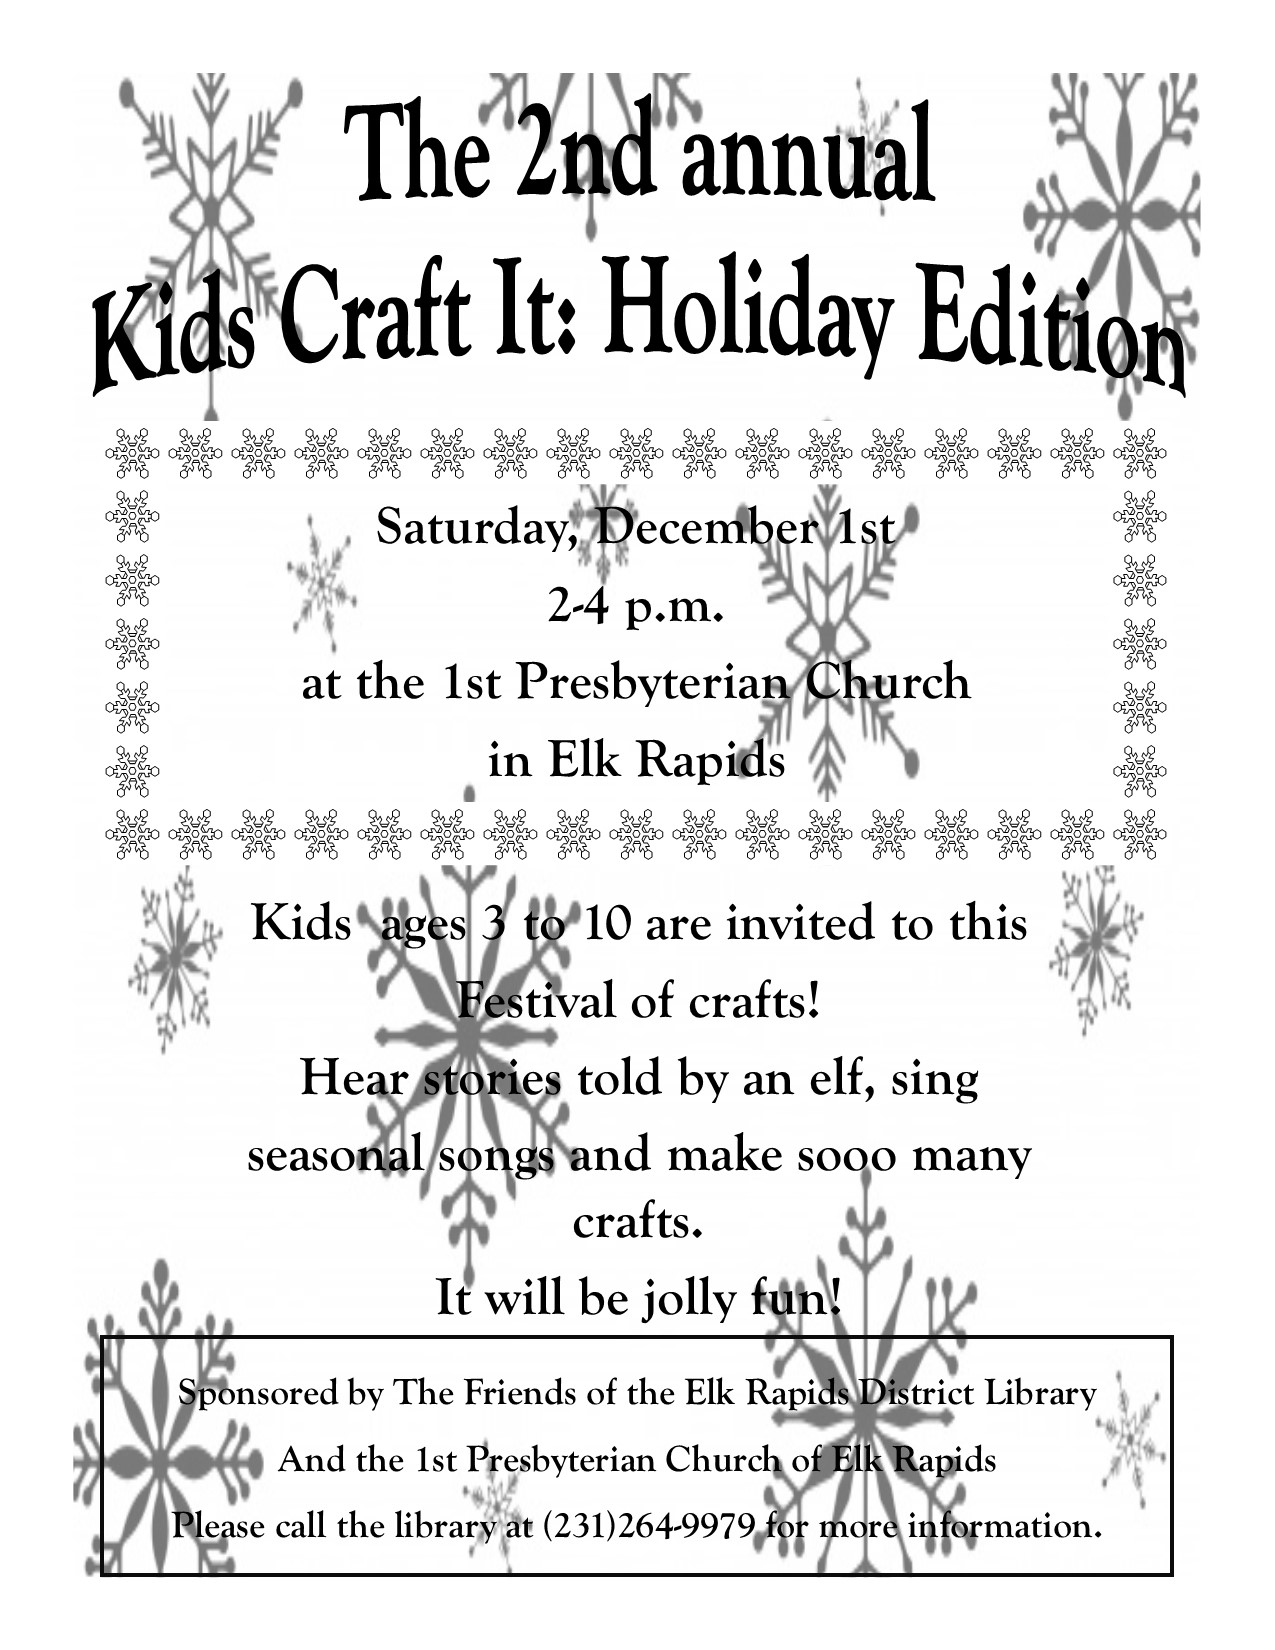 Kids Craft it holiday edition 2018 flyer_DRAFT.jpg